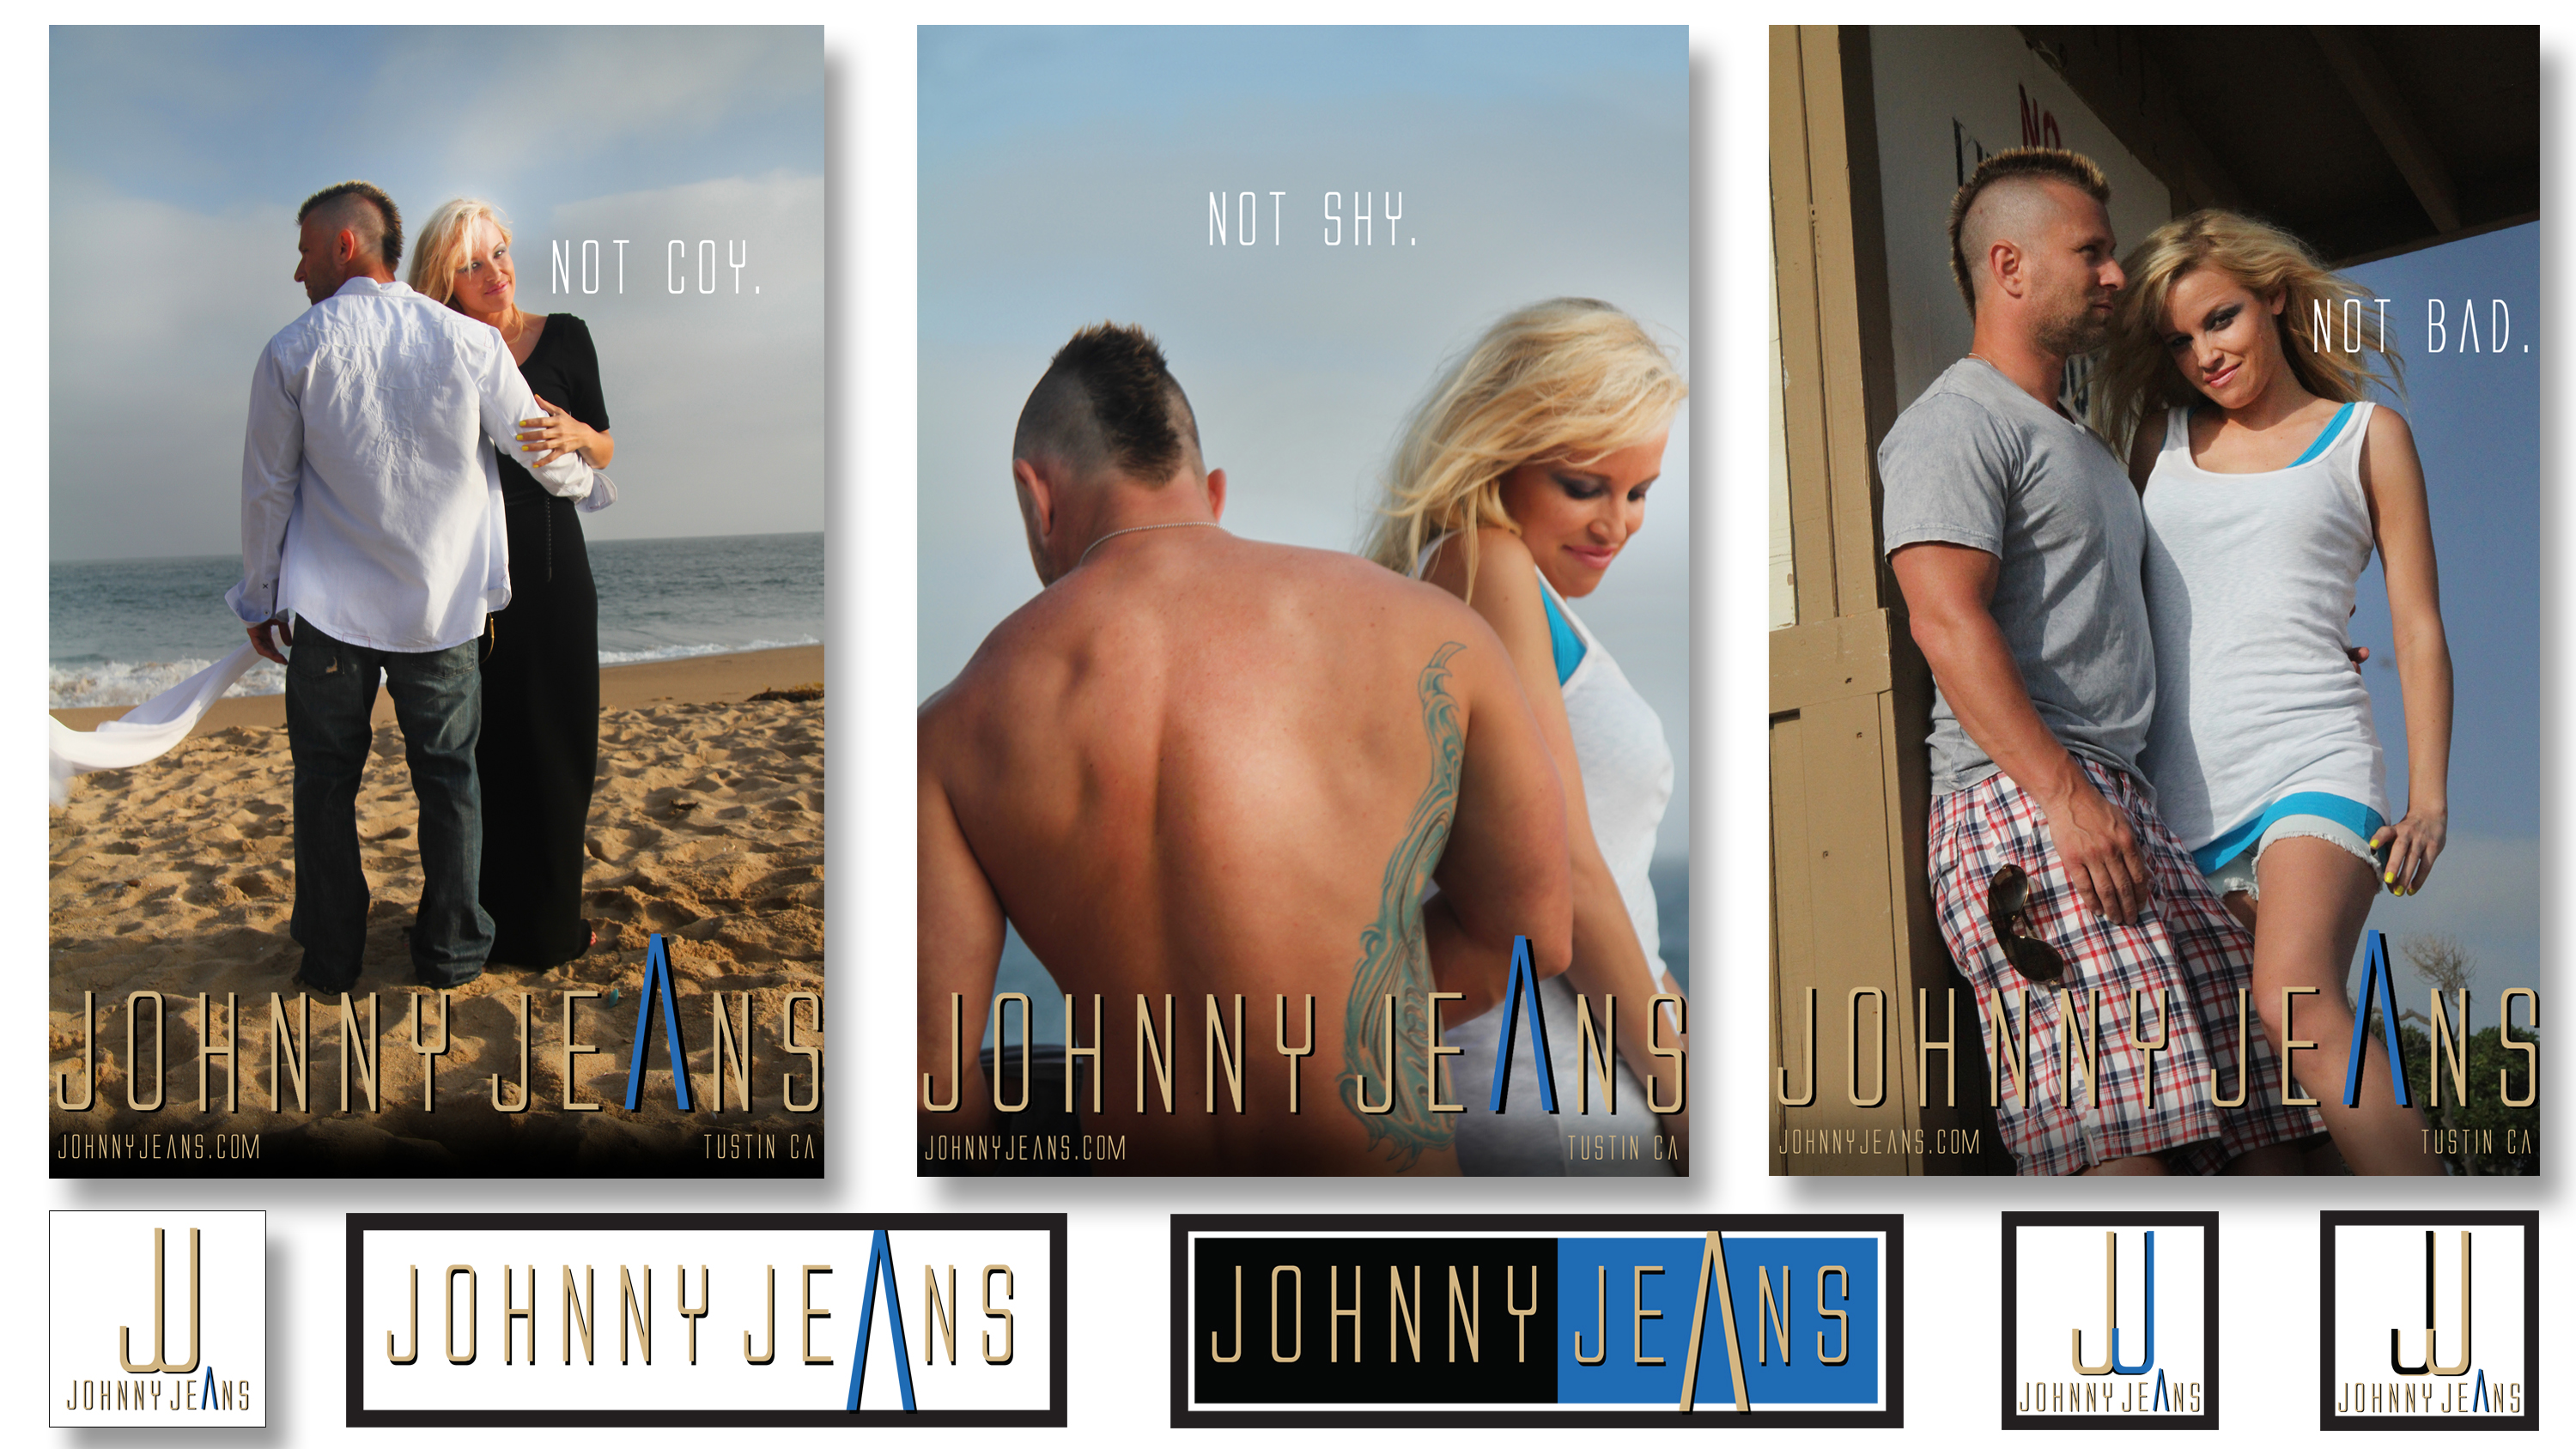 Johnny Jeans Fashion Store in Tustin CA, Branding and Logo